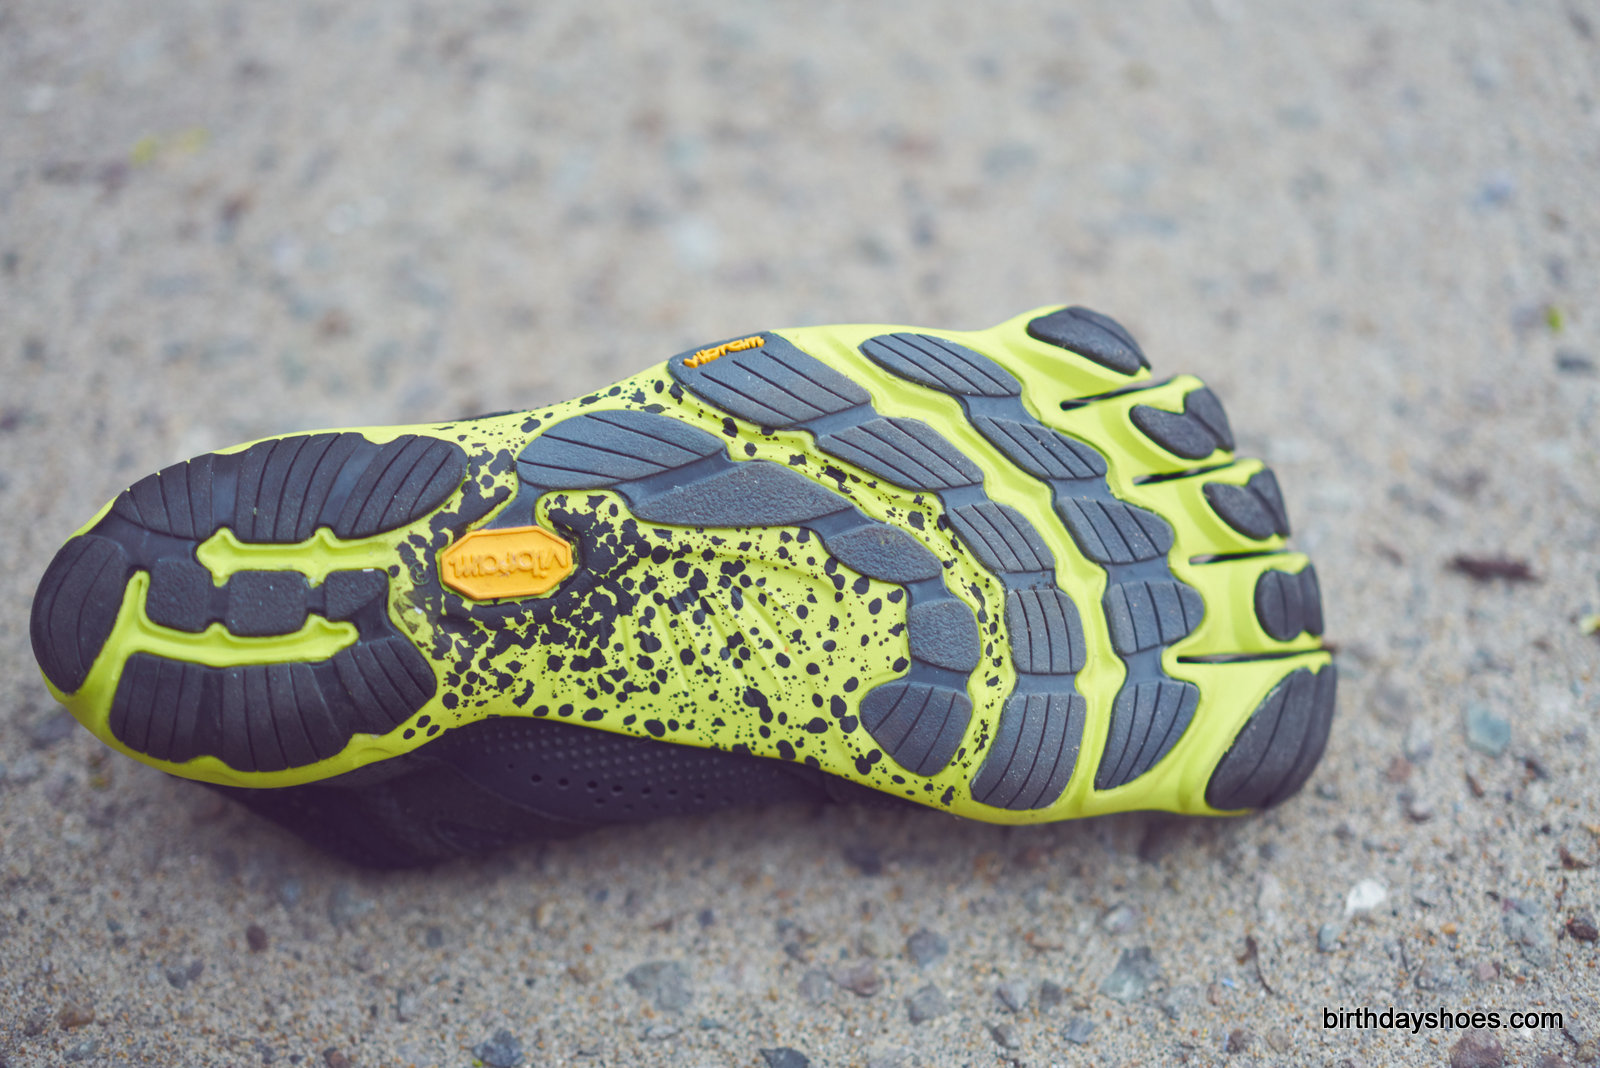 The new V-Run update to the Bikila EVO sole with Mont and XS RUN rubber and VI-LITE hybrid rubber and foam